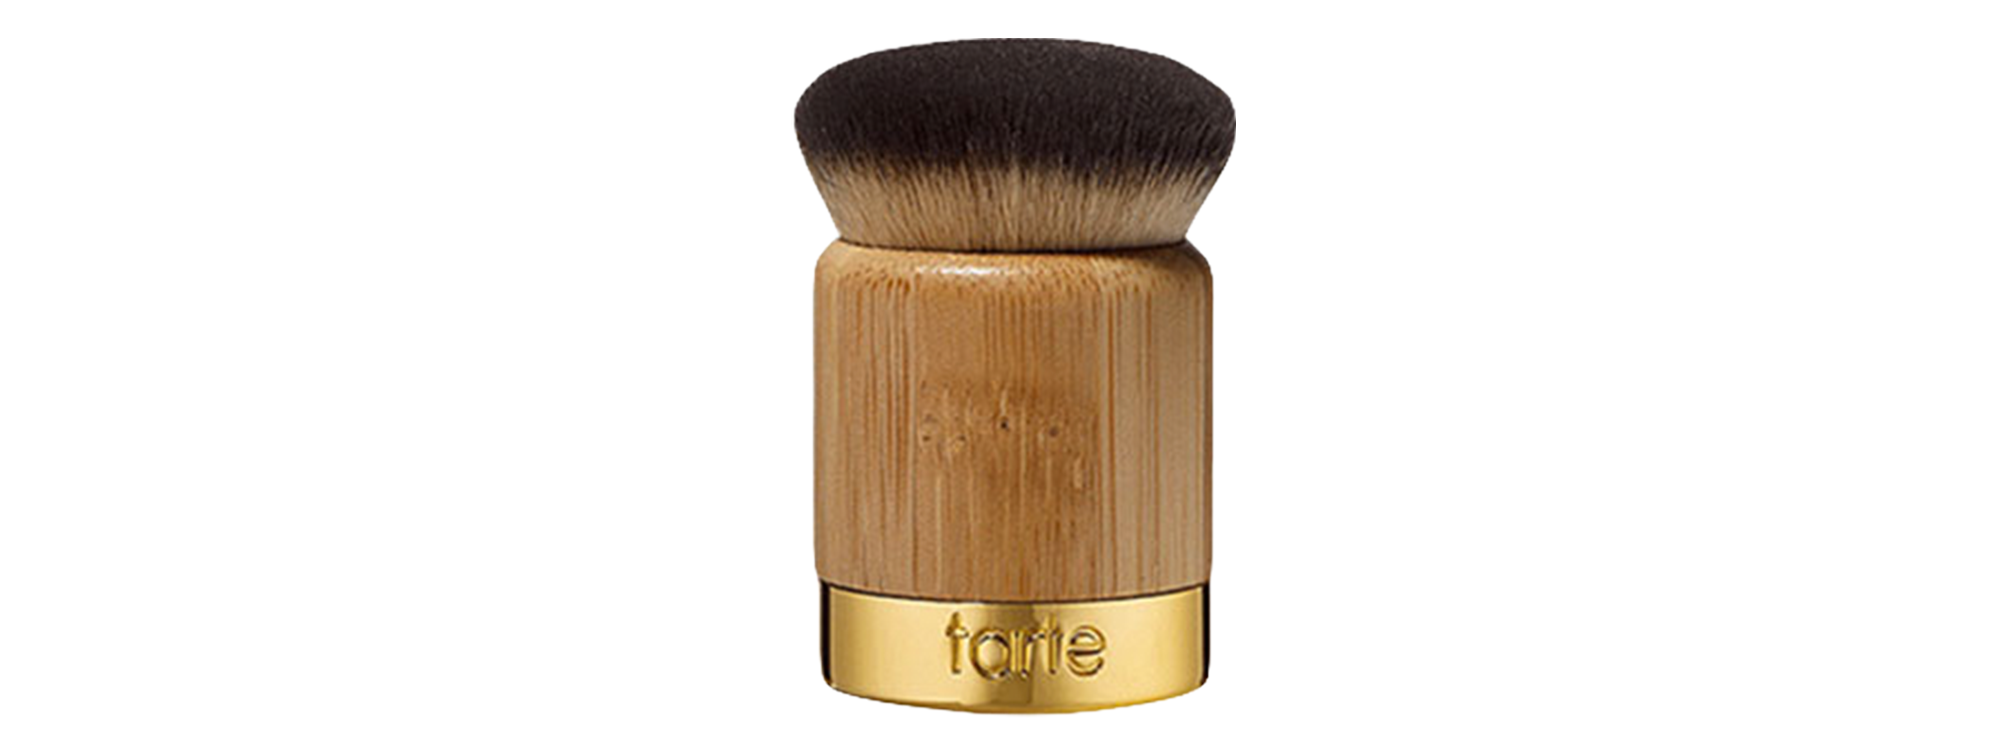 PRO Featherweight Crease Brush #38 by Sephora Collection #7